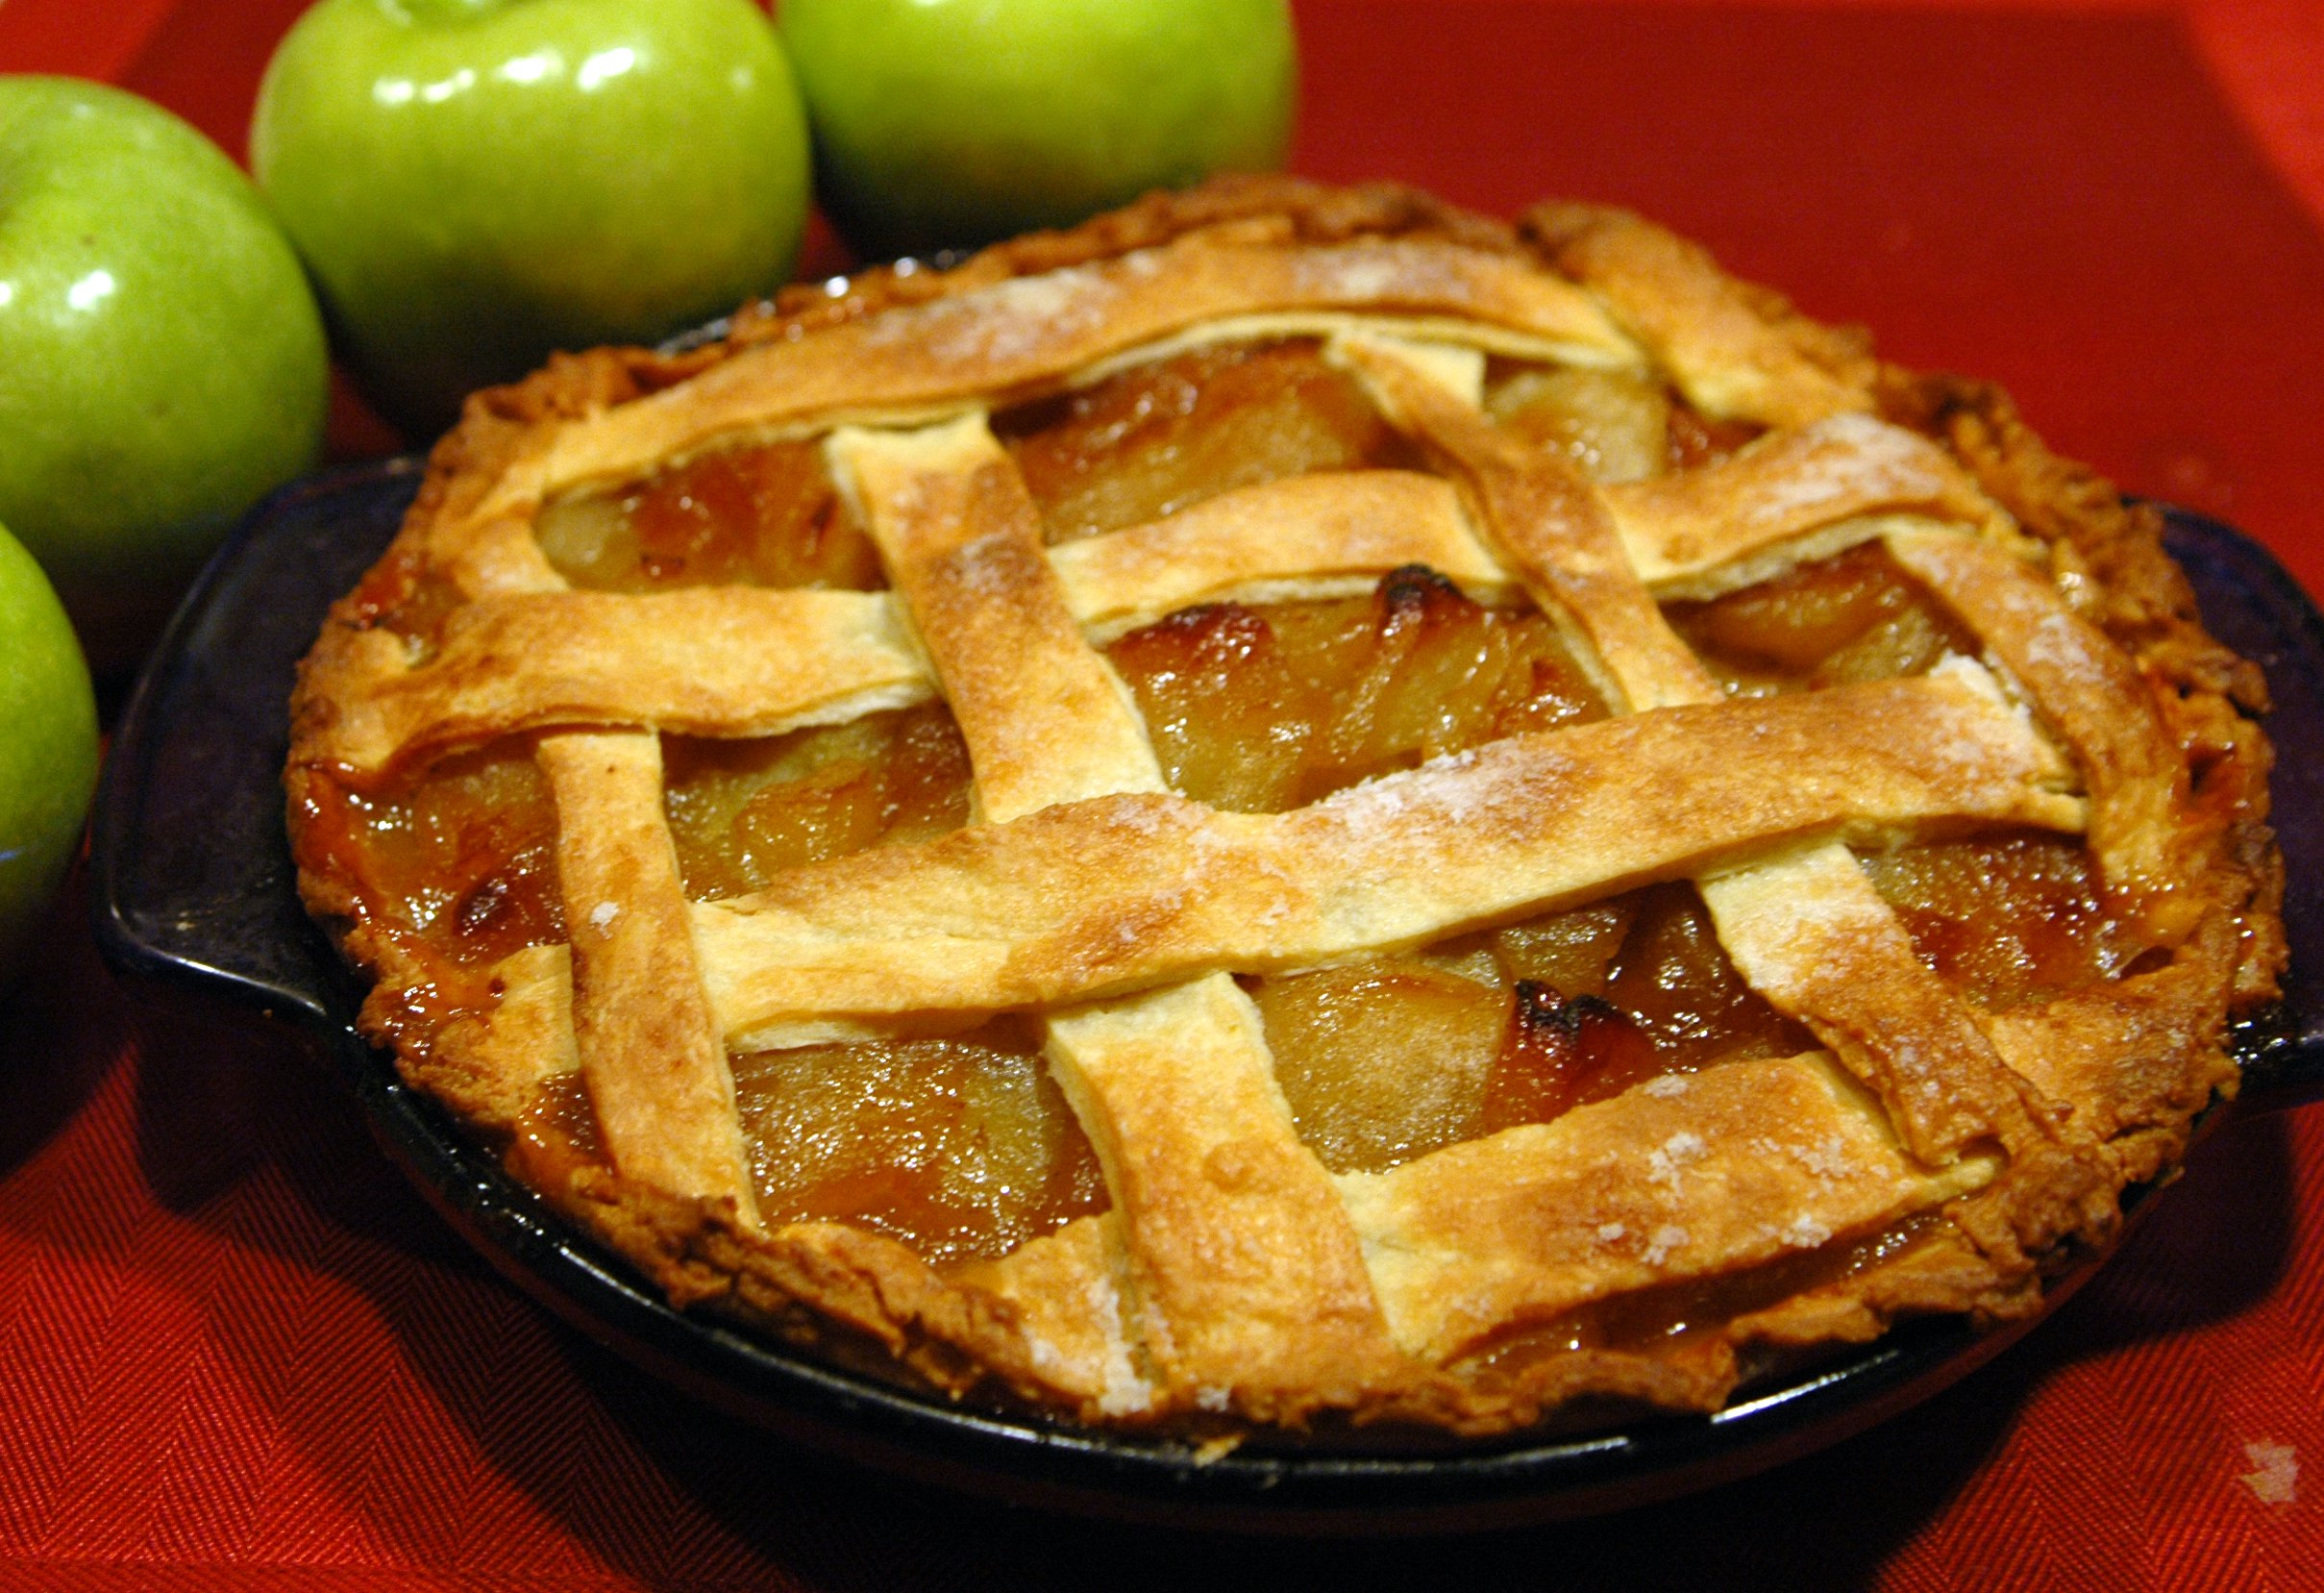 mmmm, Apple Pie... I should ask my girlfriend to bake me one.